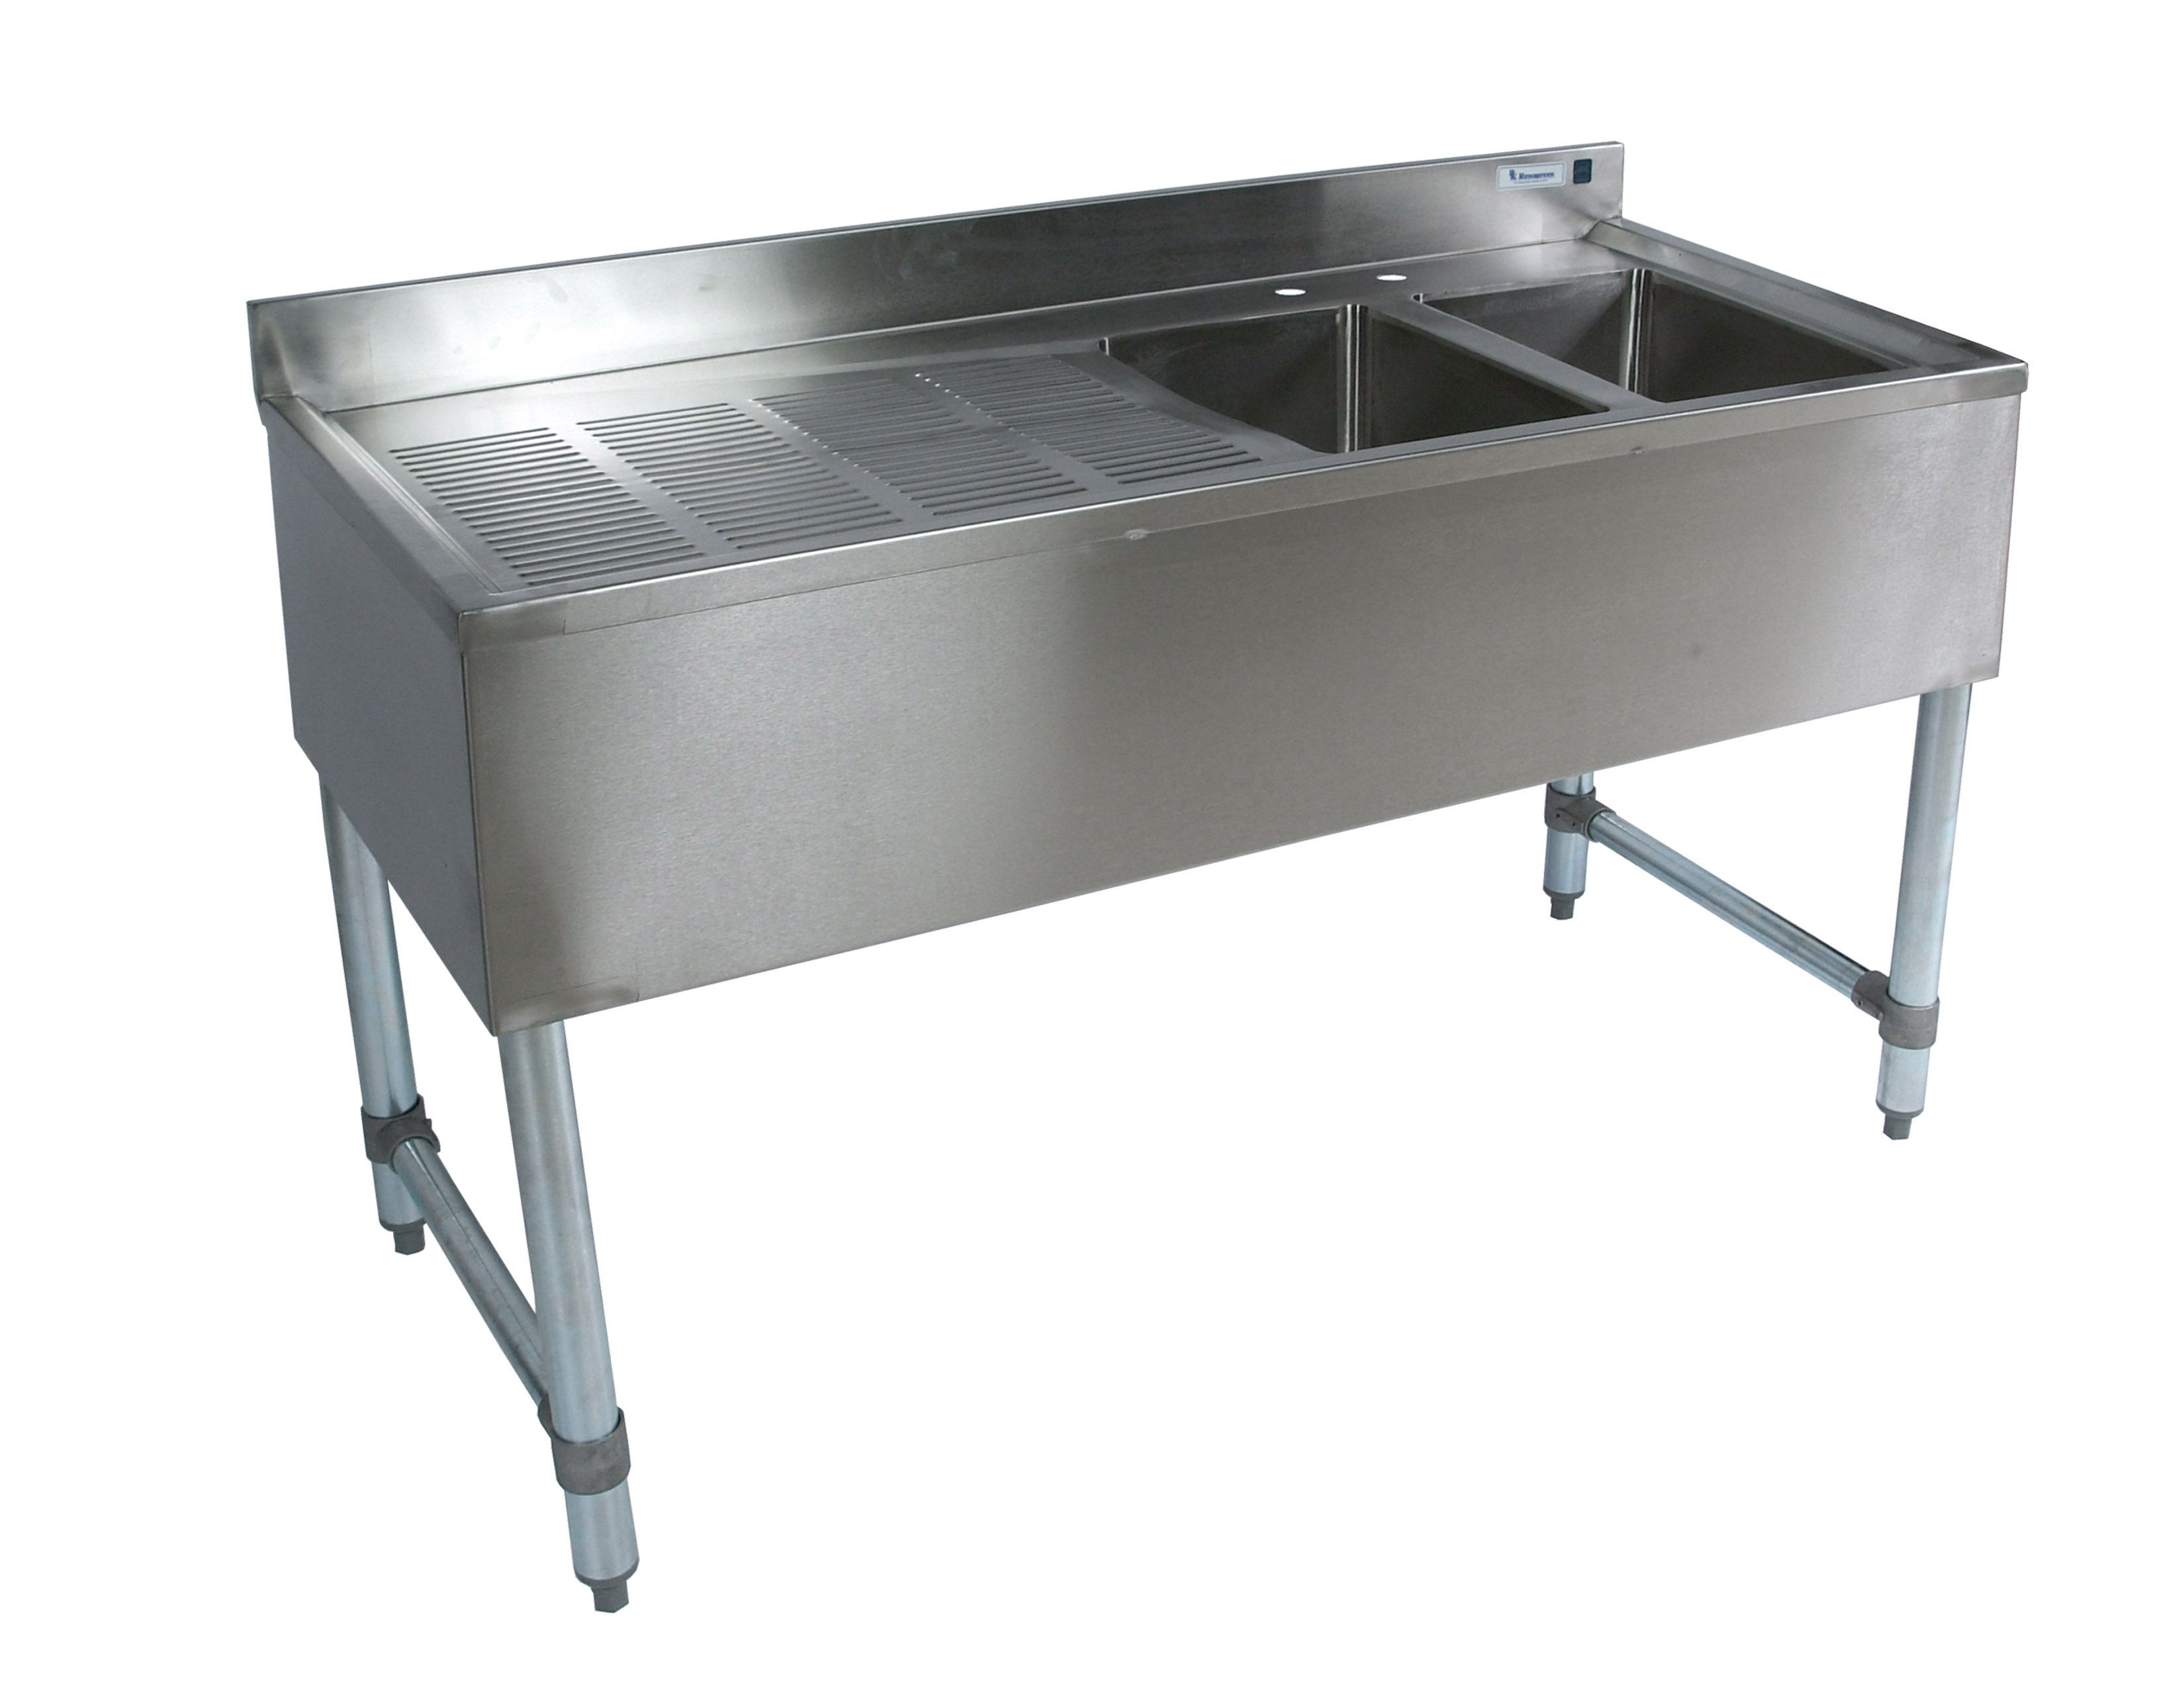 Quality mercial Kitchen Equipment 2 partment Stainless 48